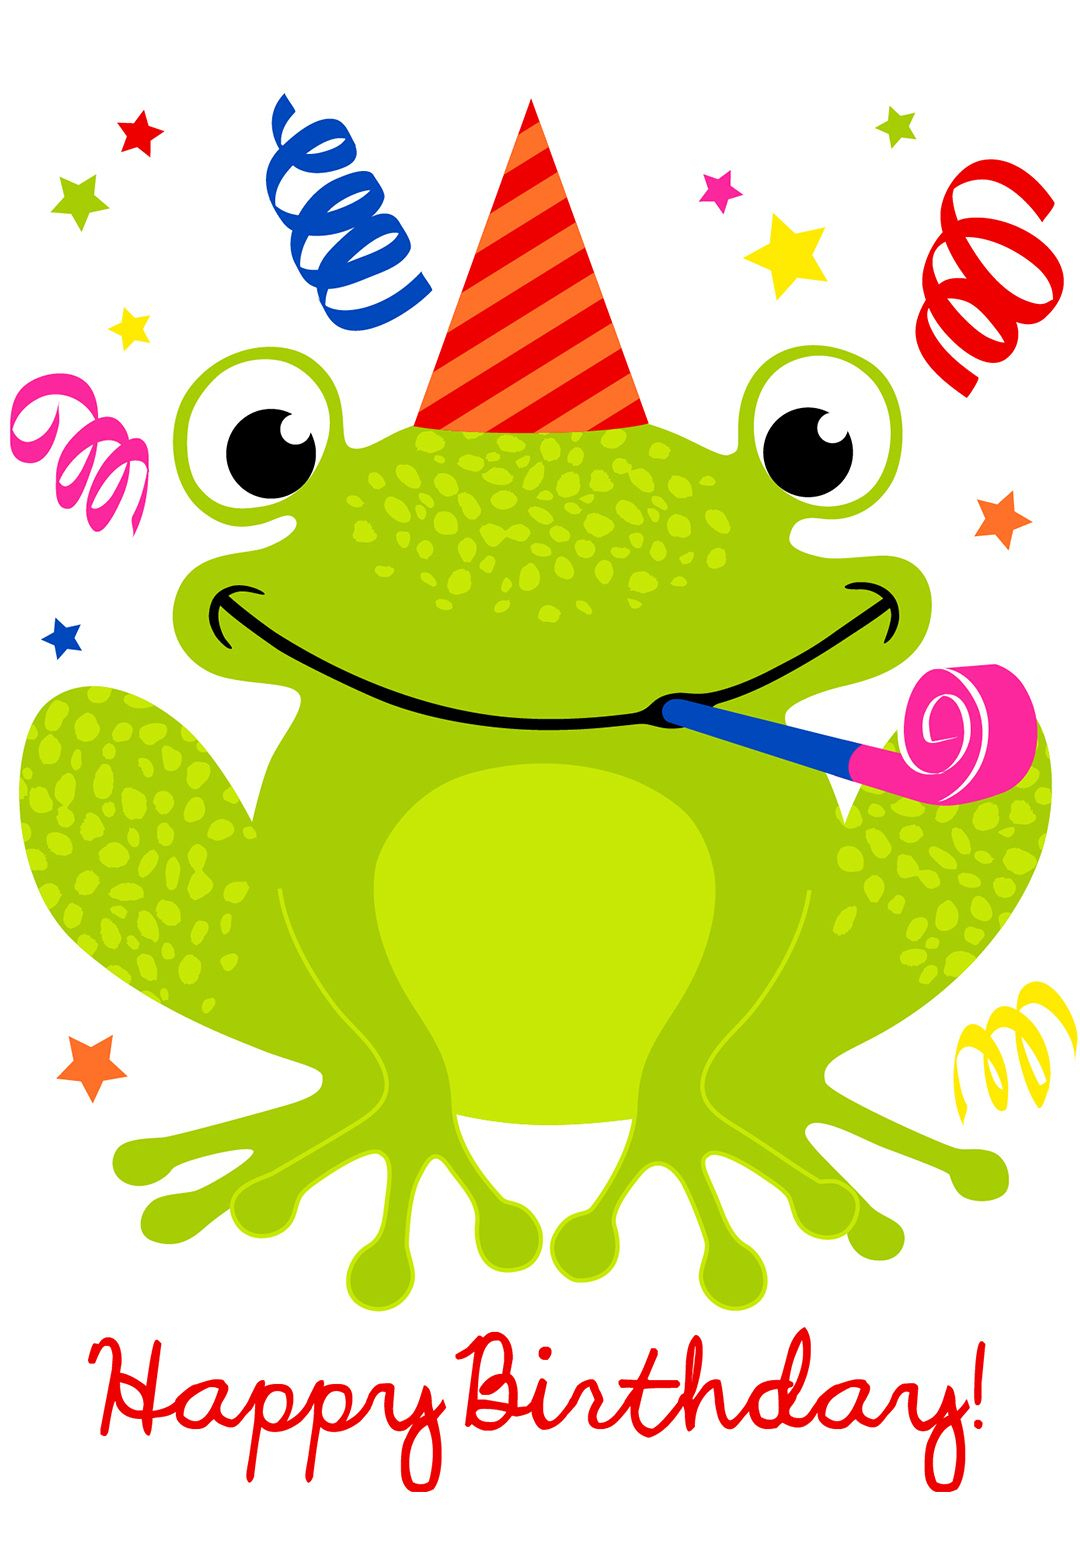 Free Printable A Happy Hopping Birthday Greeting Card #birthday - Birthday Clipart Free Printable